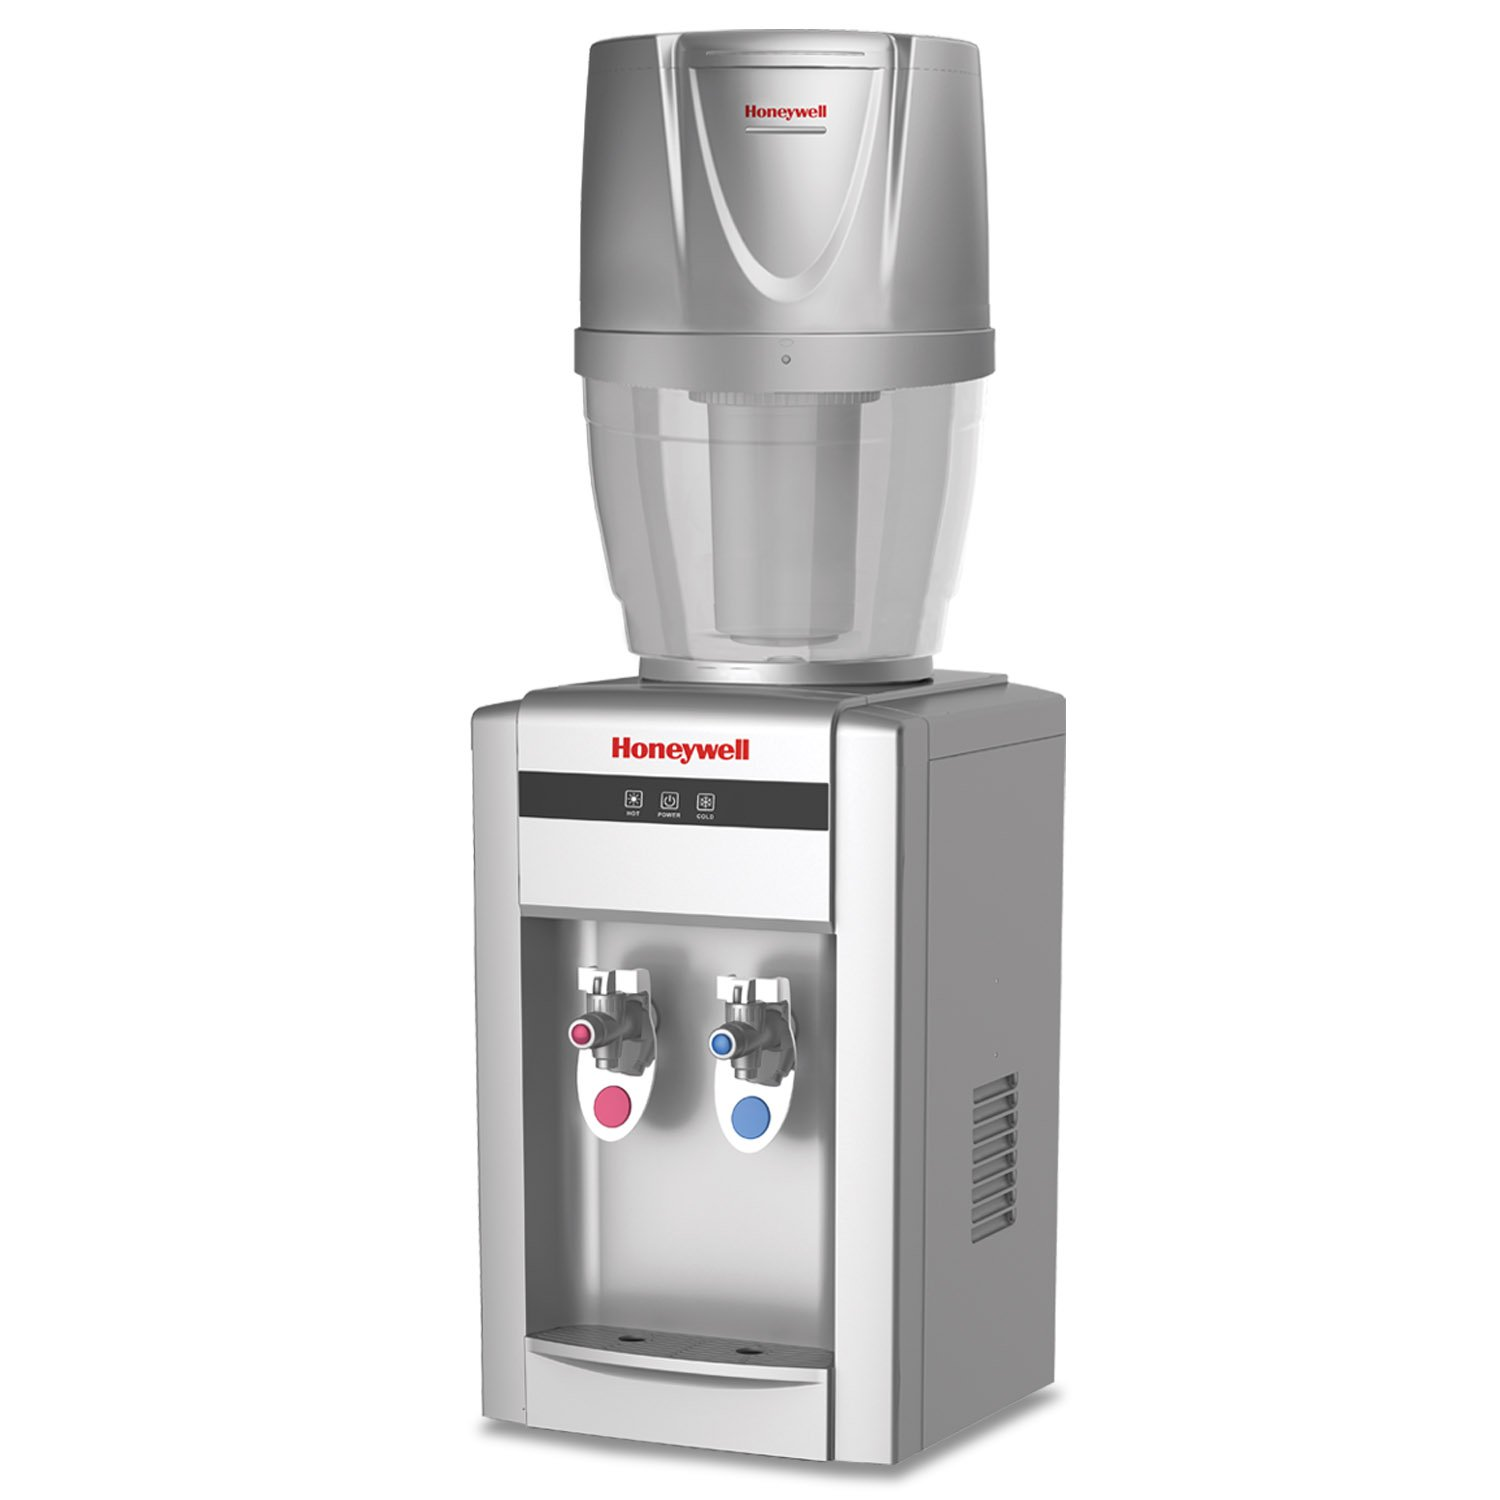 Honeywell HWB2052S/HWB101S 21-Inch Tabletop Water Cooler Dispenser, Hot and Cold Temperatures with 4 Gallon Filtration System, Silver